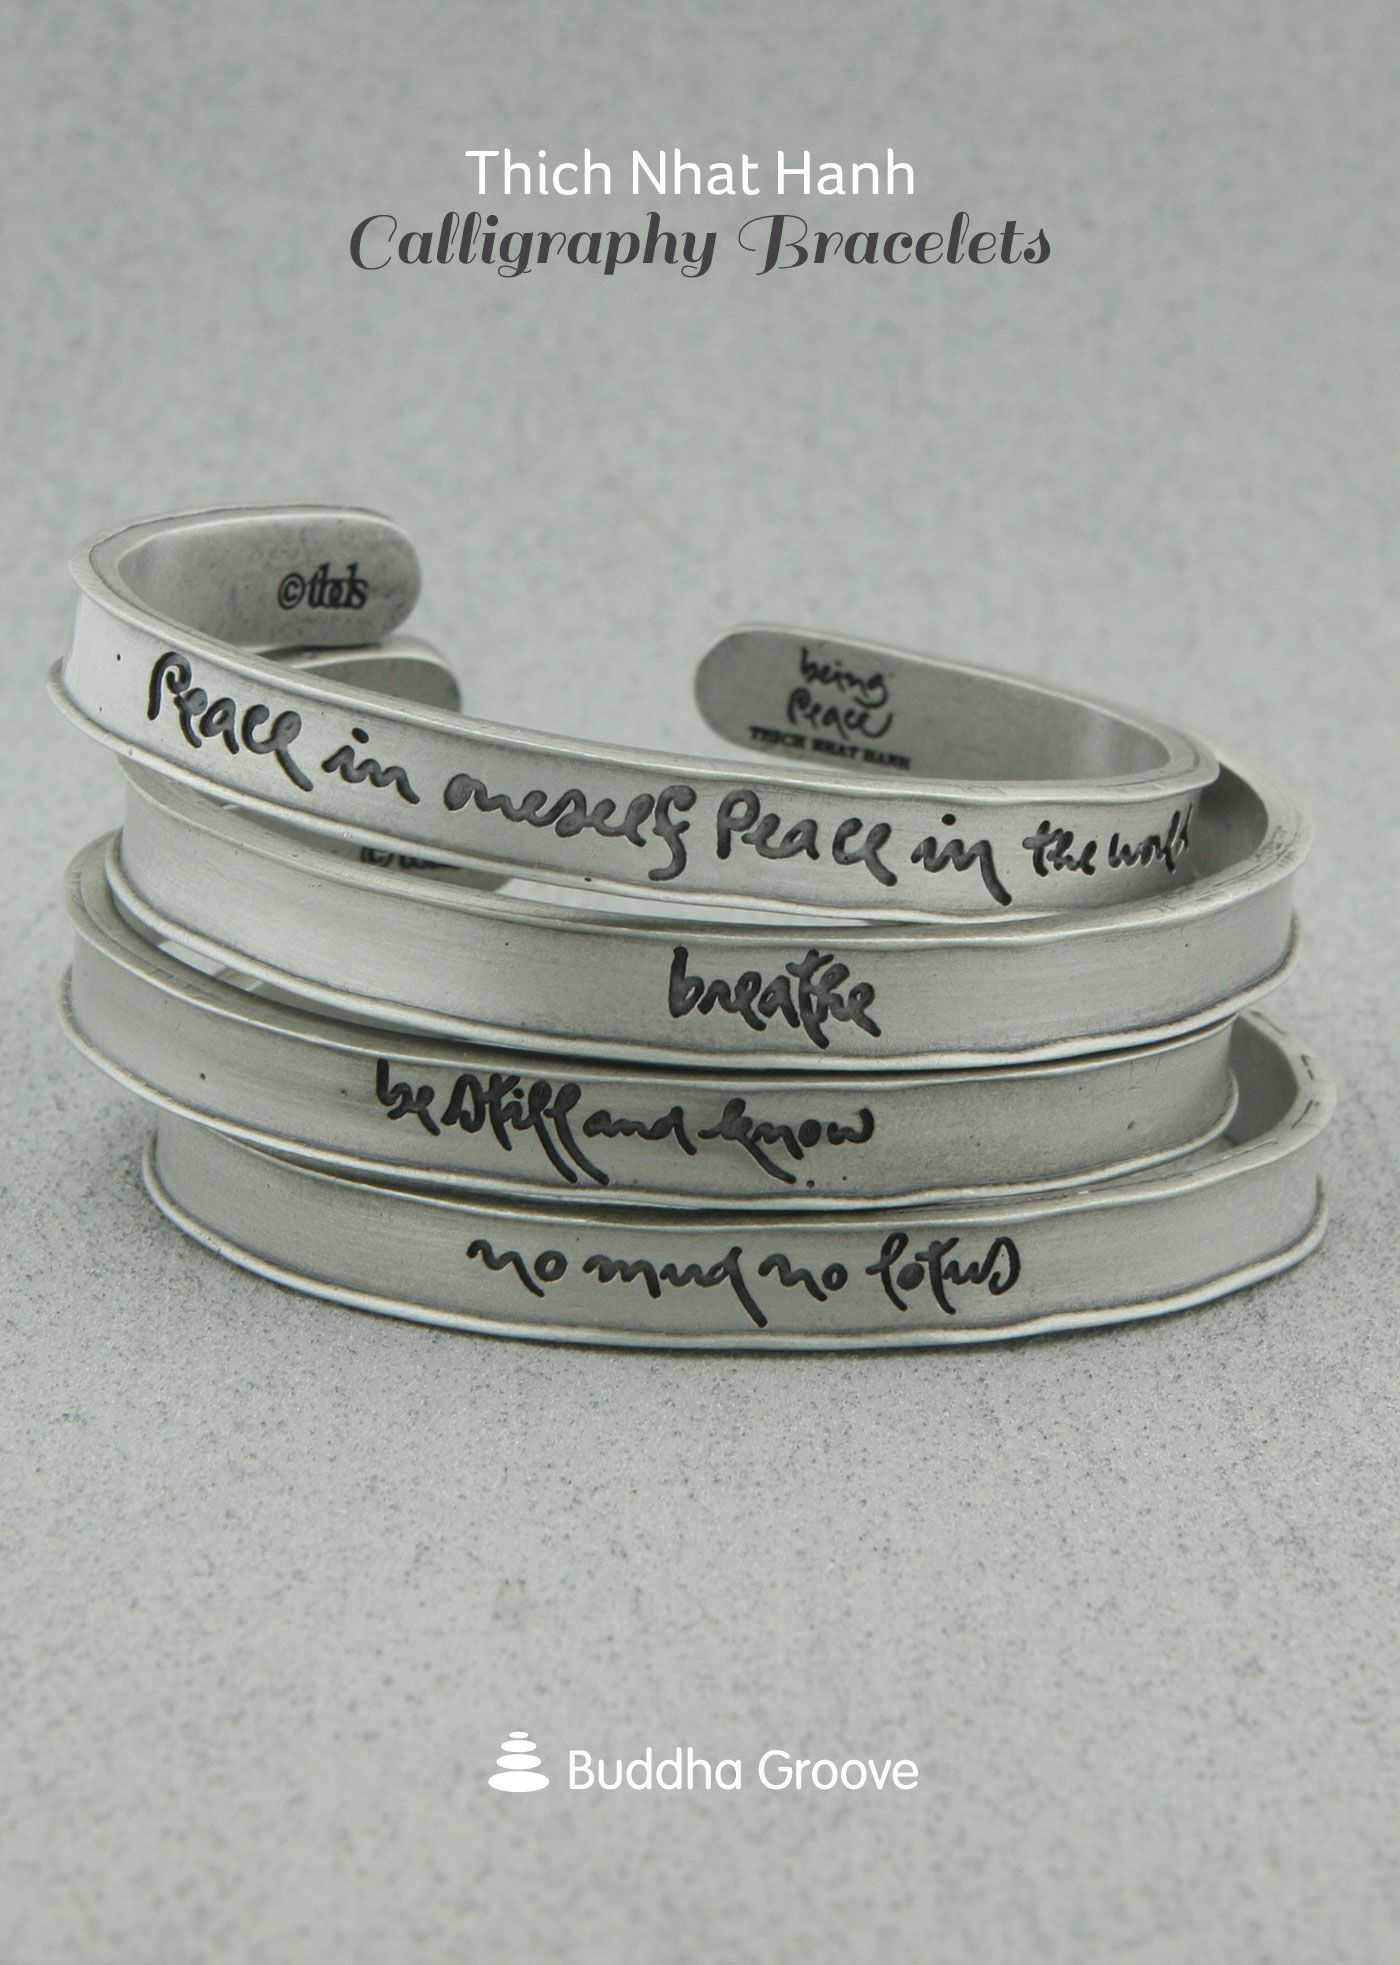 Thich Nhat Hanh Calligraphy Bracelets Metal Jewelry Inspirational Metals